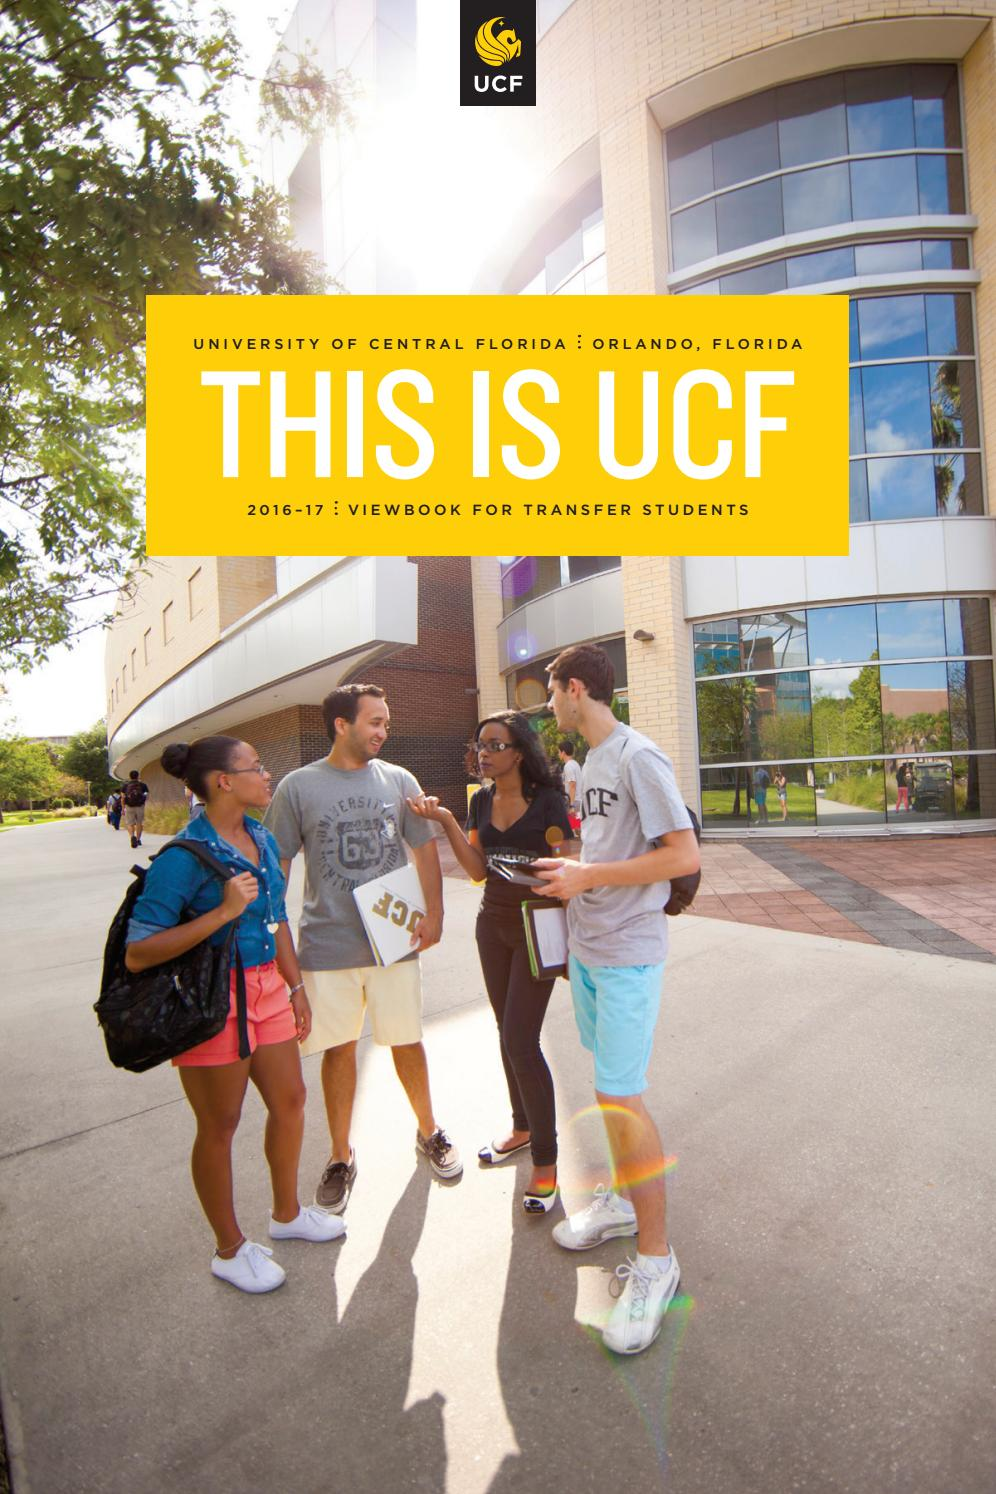 Viewbook For Transfer Students 20162017 By University Of Central Florida   Issuu